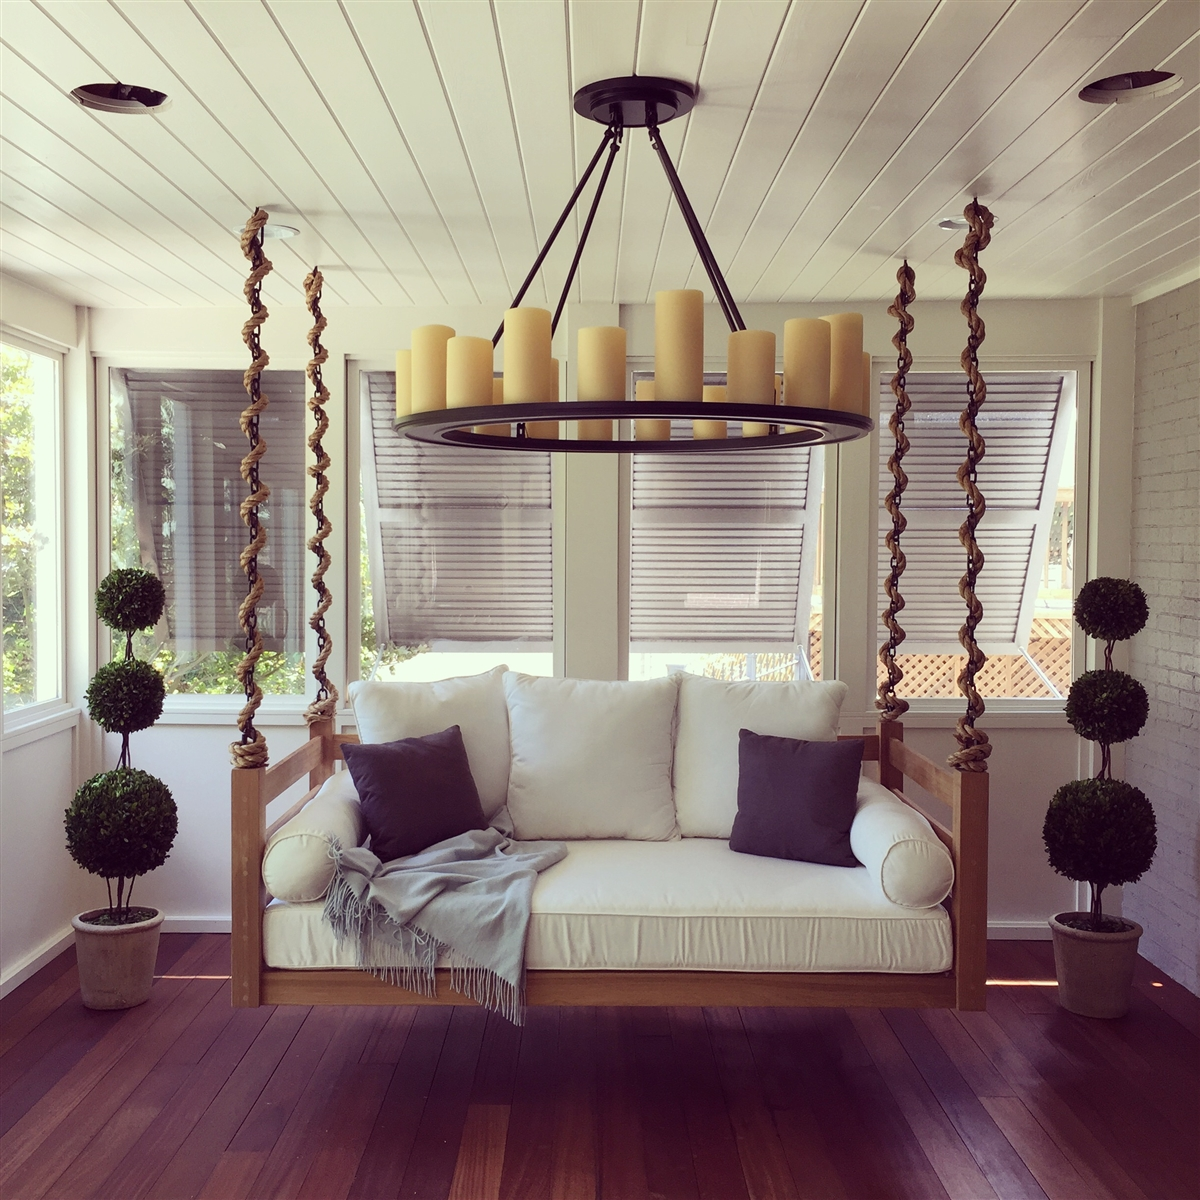 Image of: Bed Porch Swing Style